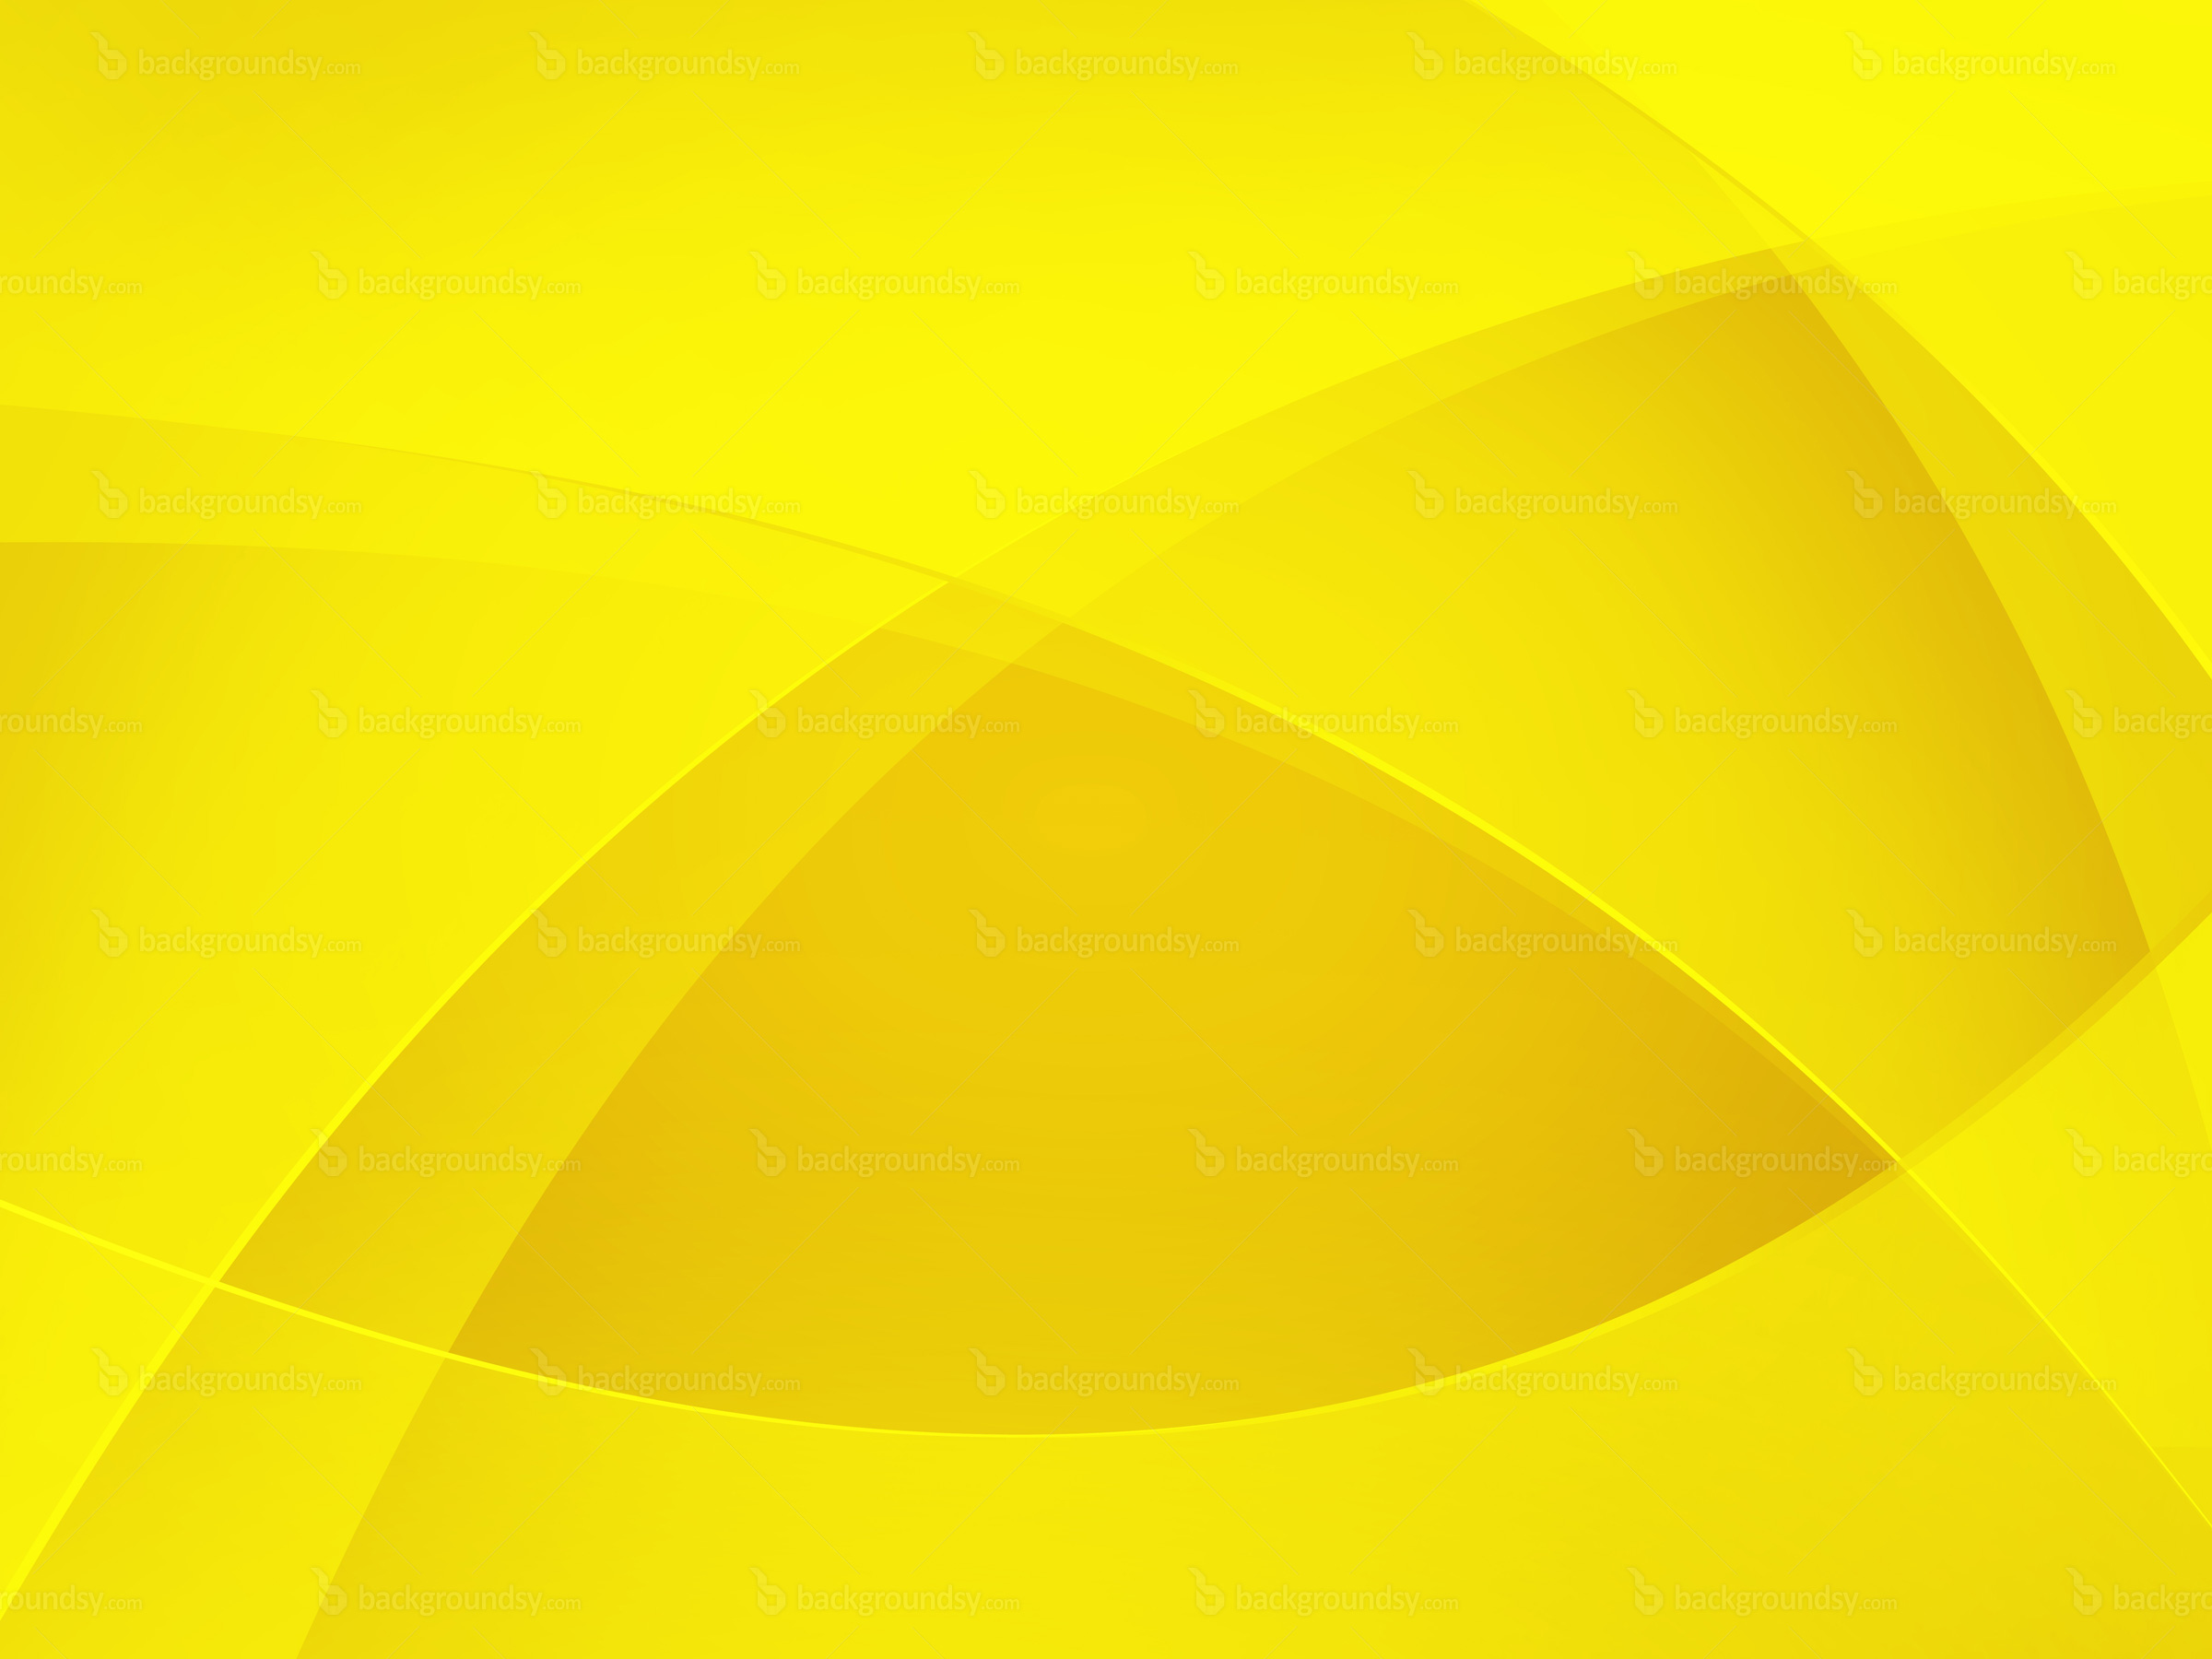 Yellow Background Image Picture 6527 Wallpaper Cool Walldiskpaper 2400x1800